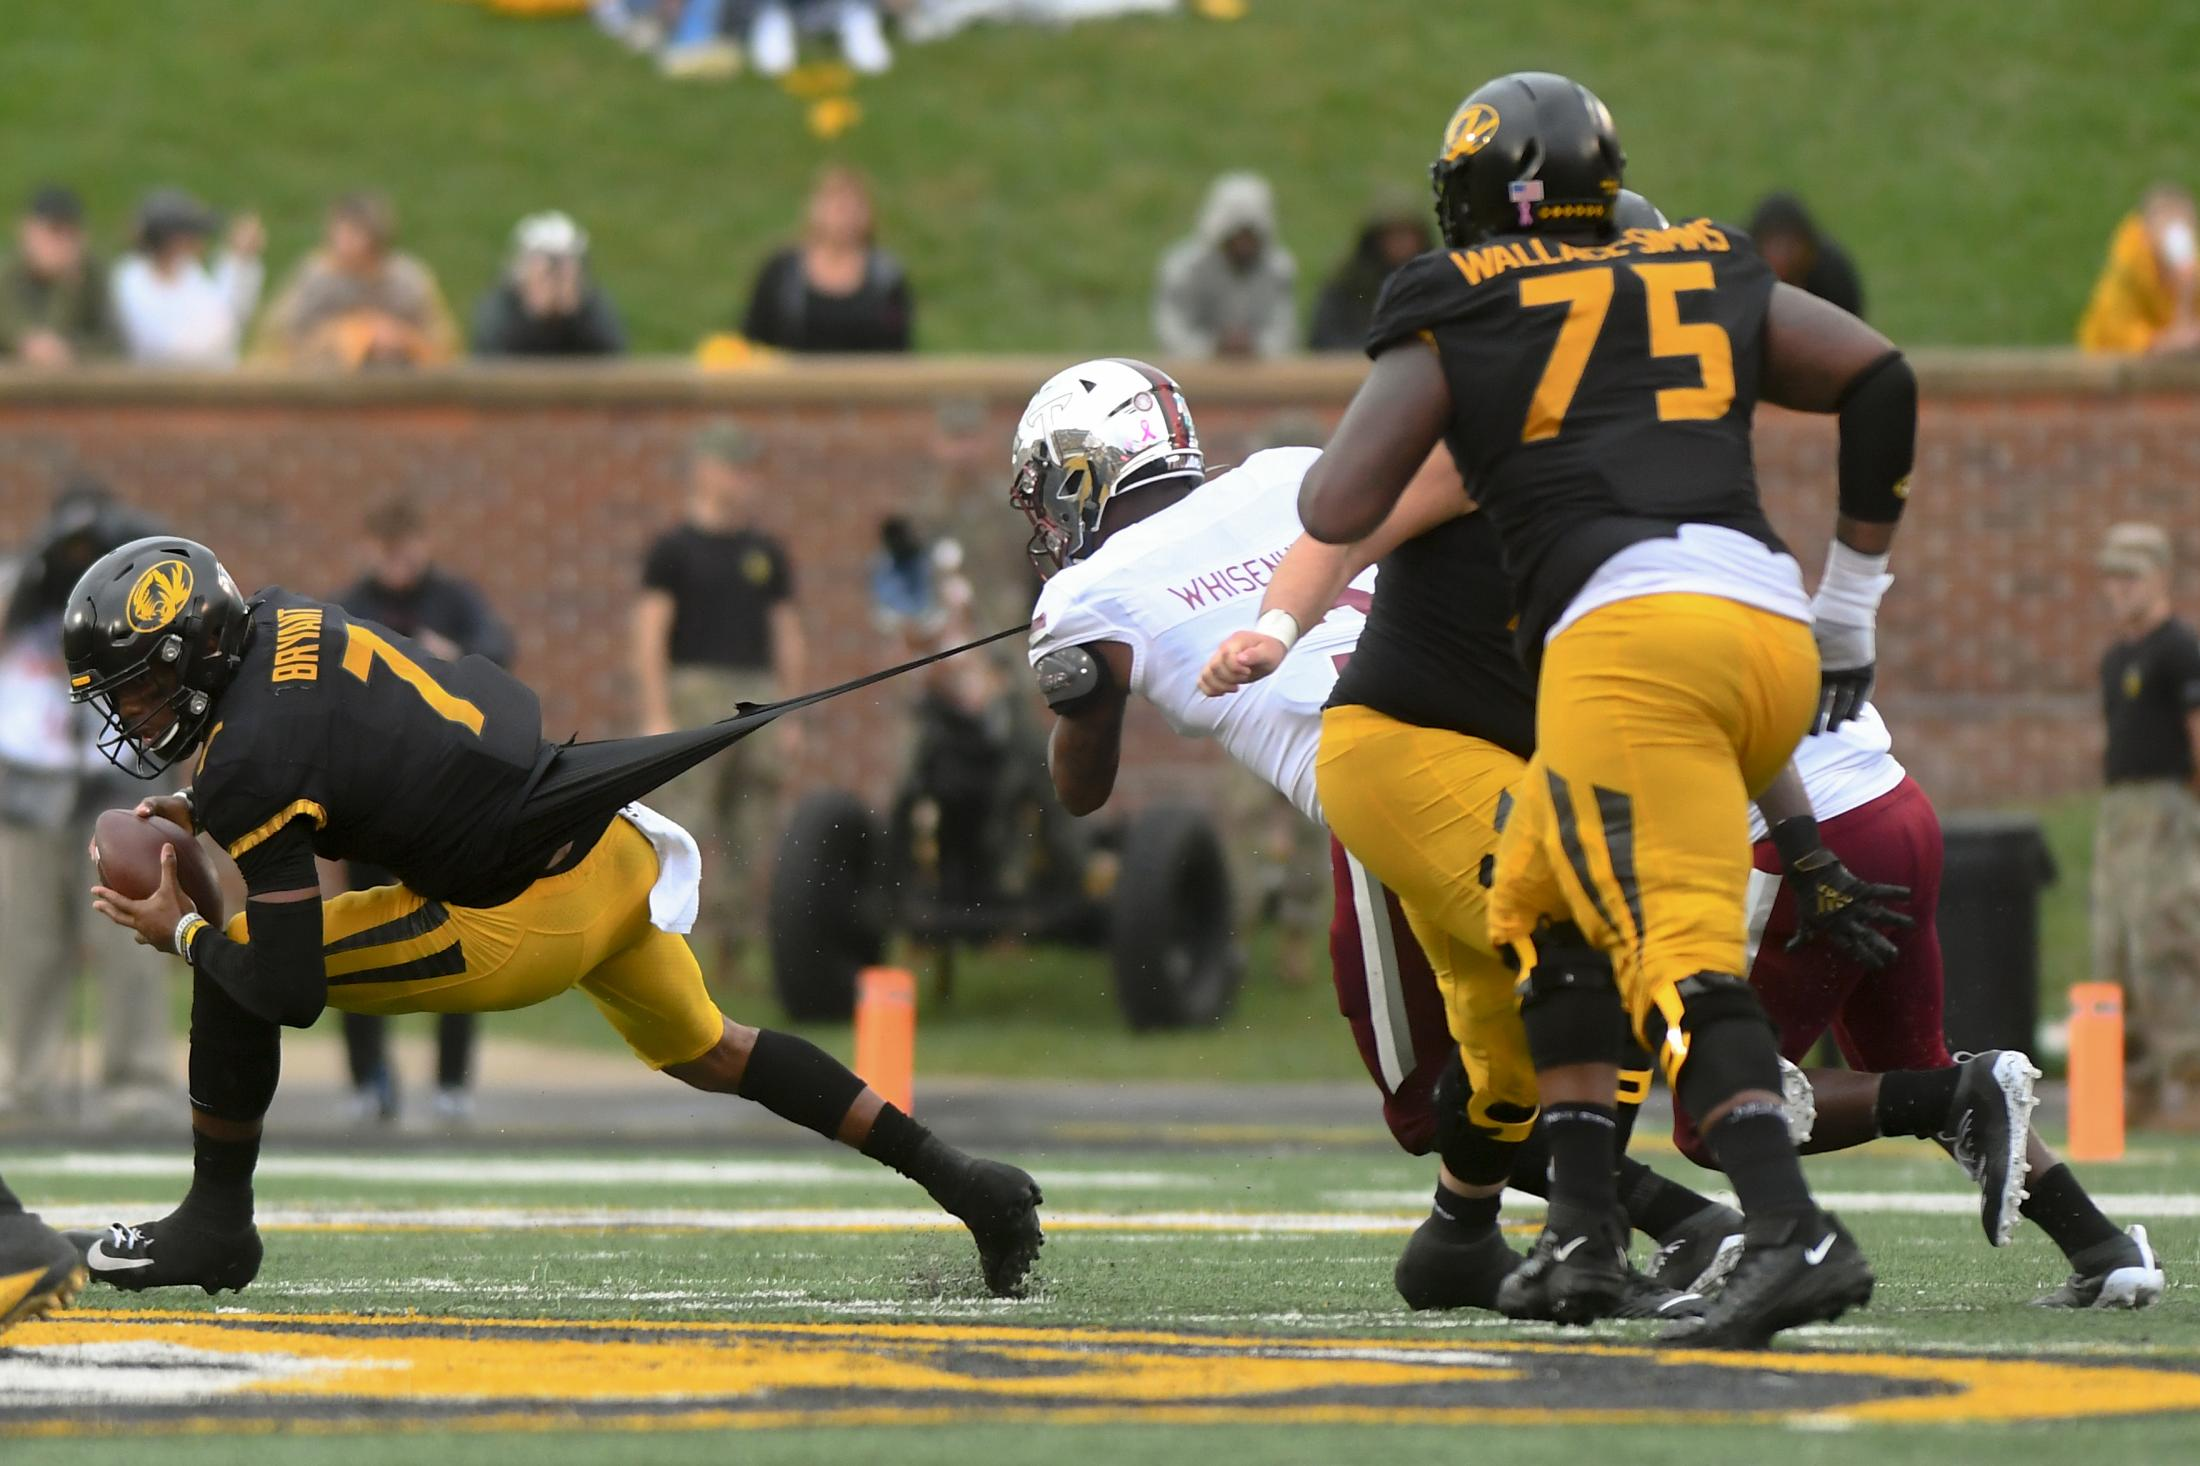 Missouri quarterback Kelly Bryant dodges a sack by a Troy defensive player on Faurot Field at Memorial Stadium on Saturday, October 05, 2019.